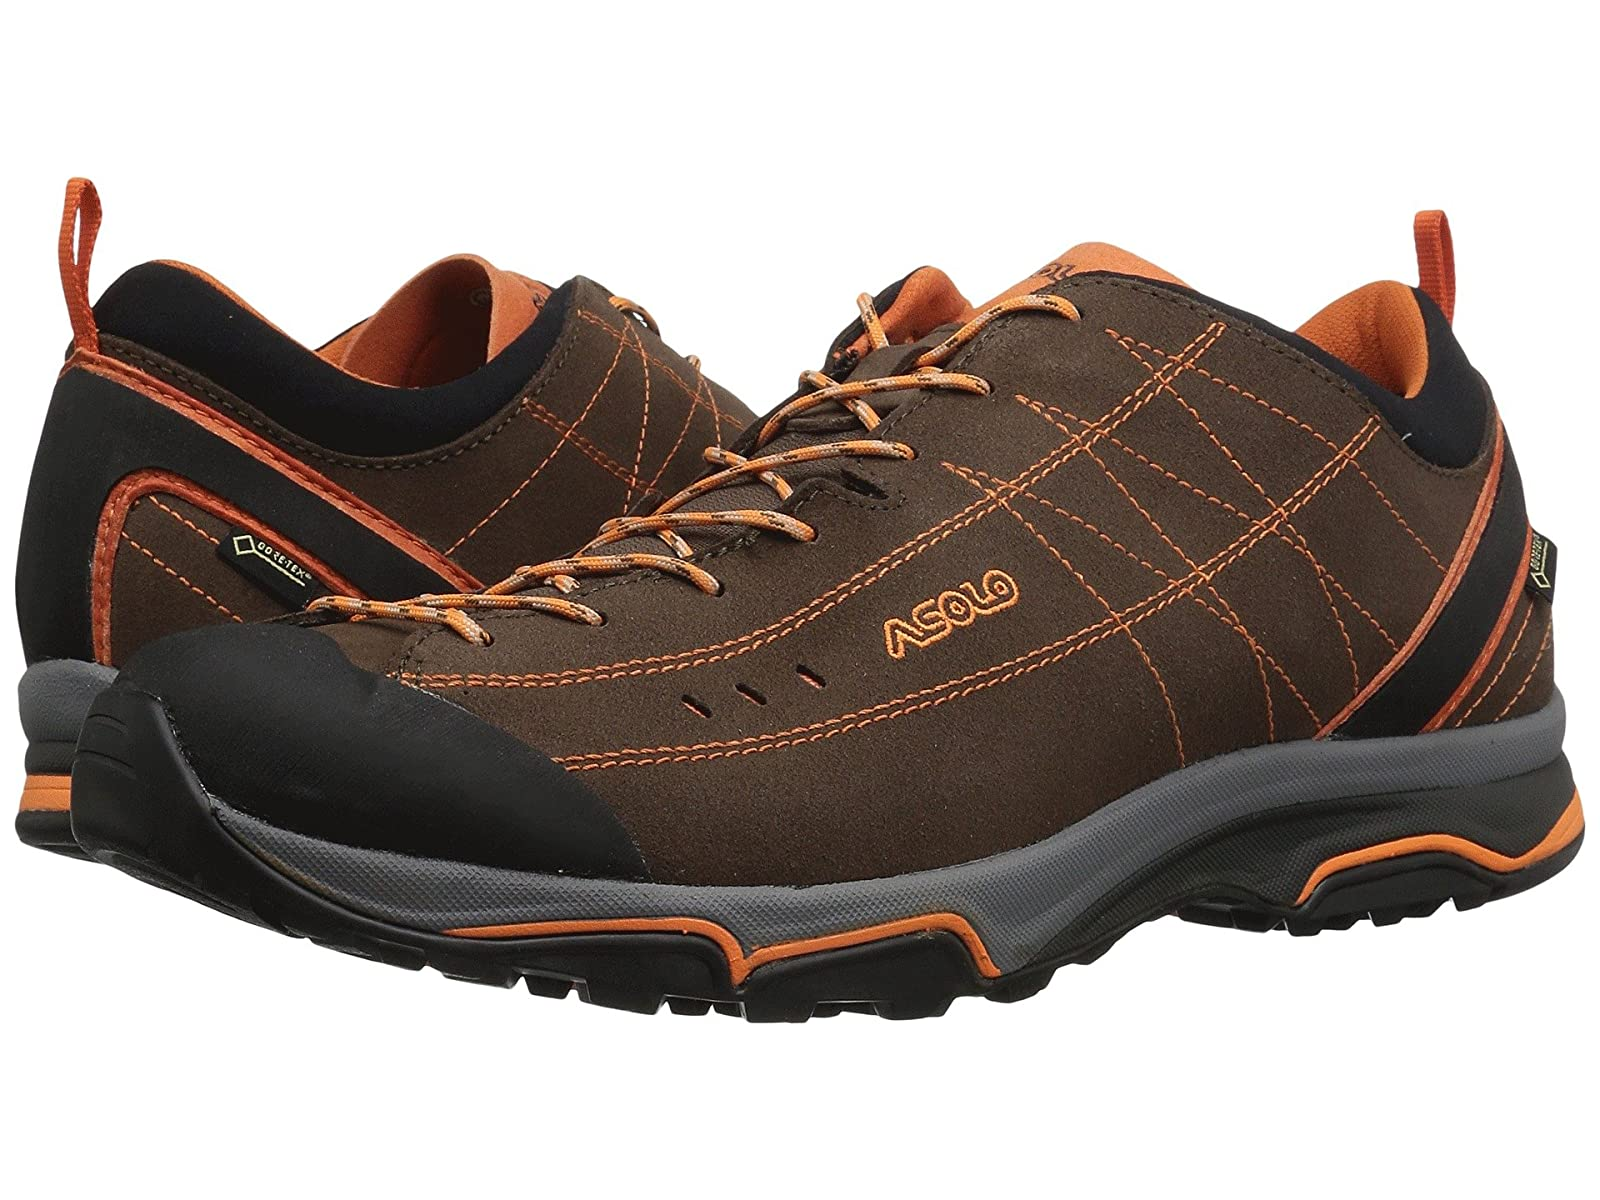 Asolo Nucleon GVAtmospheric grades have affordable shoes